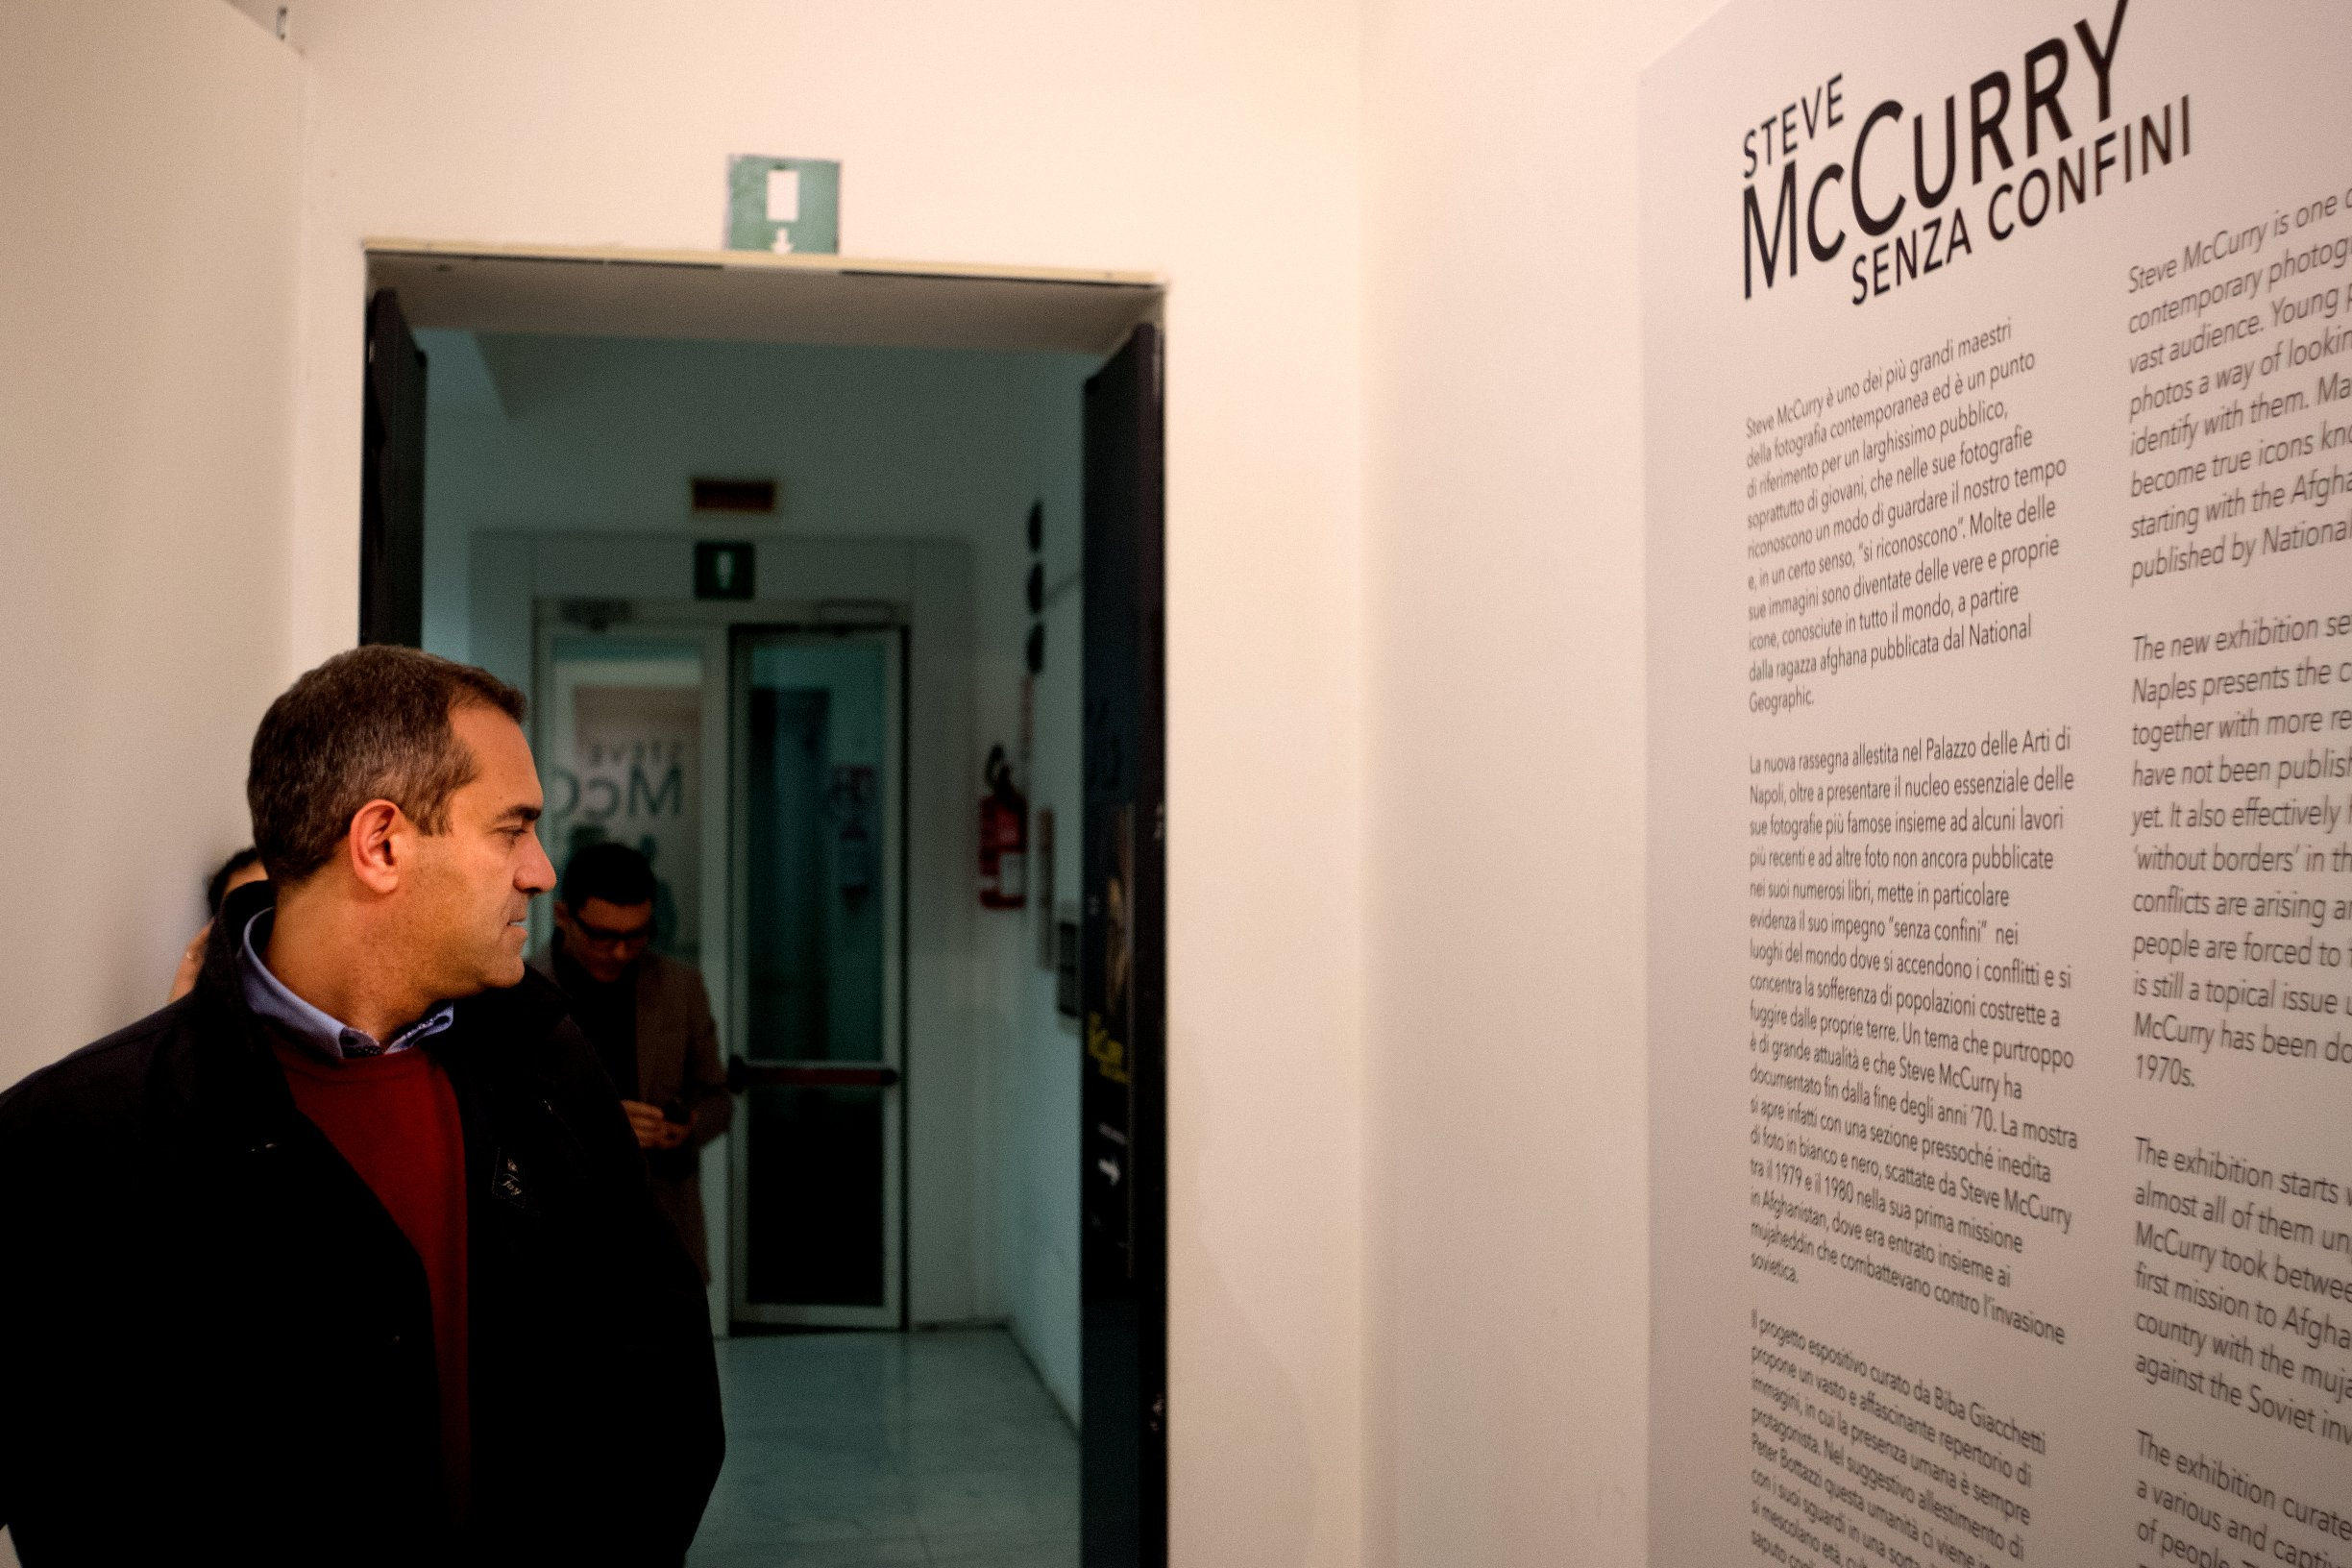 Napoli, Italia - 5 Novembre 2016 - Il sindaco di Napoli Luigi De Magistris in visita alla mostra fotografica di Steve McCurry al museo PAN Palazzo delle Arti Napoli. Ph. Eliano Imperato Ag. Controluce Mayor of Napoli Luigi De Magistris visiting the exhibition of Steve McCurry at PAN Palazzo delle Arti Napoli museum in Napoli, southern Italy, on November 5, 2016.